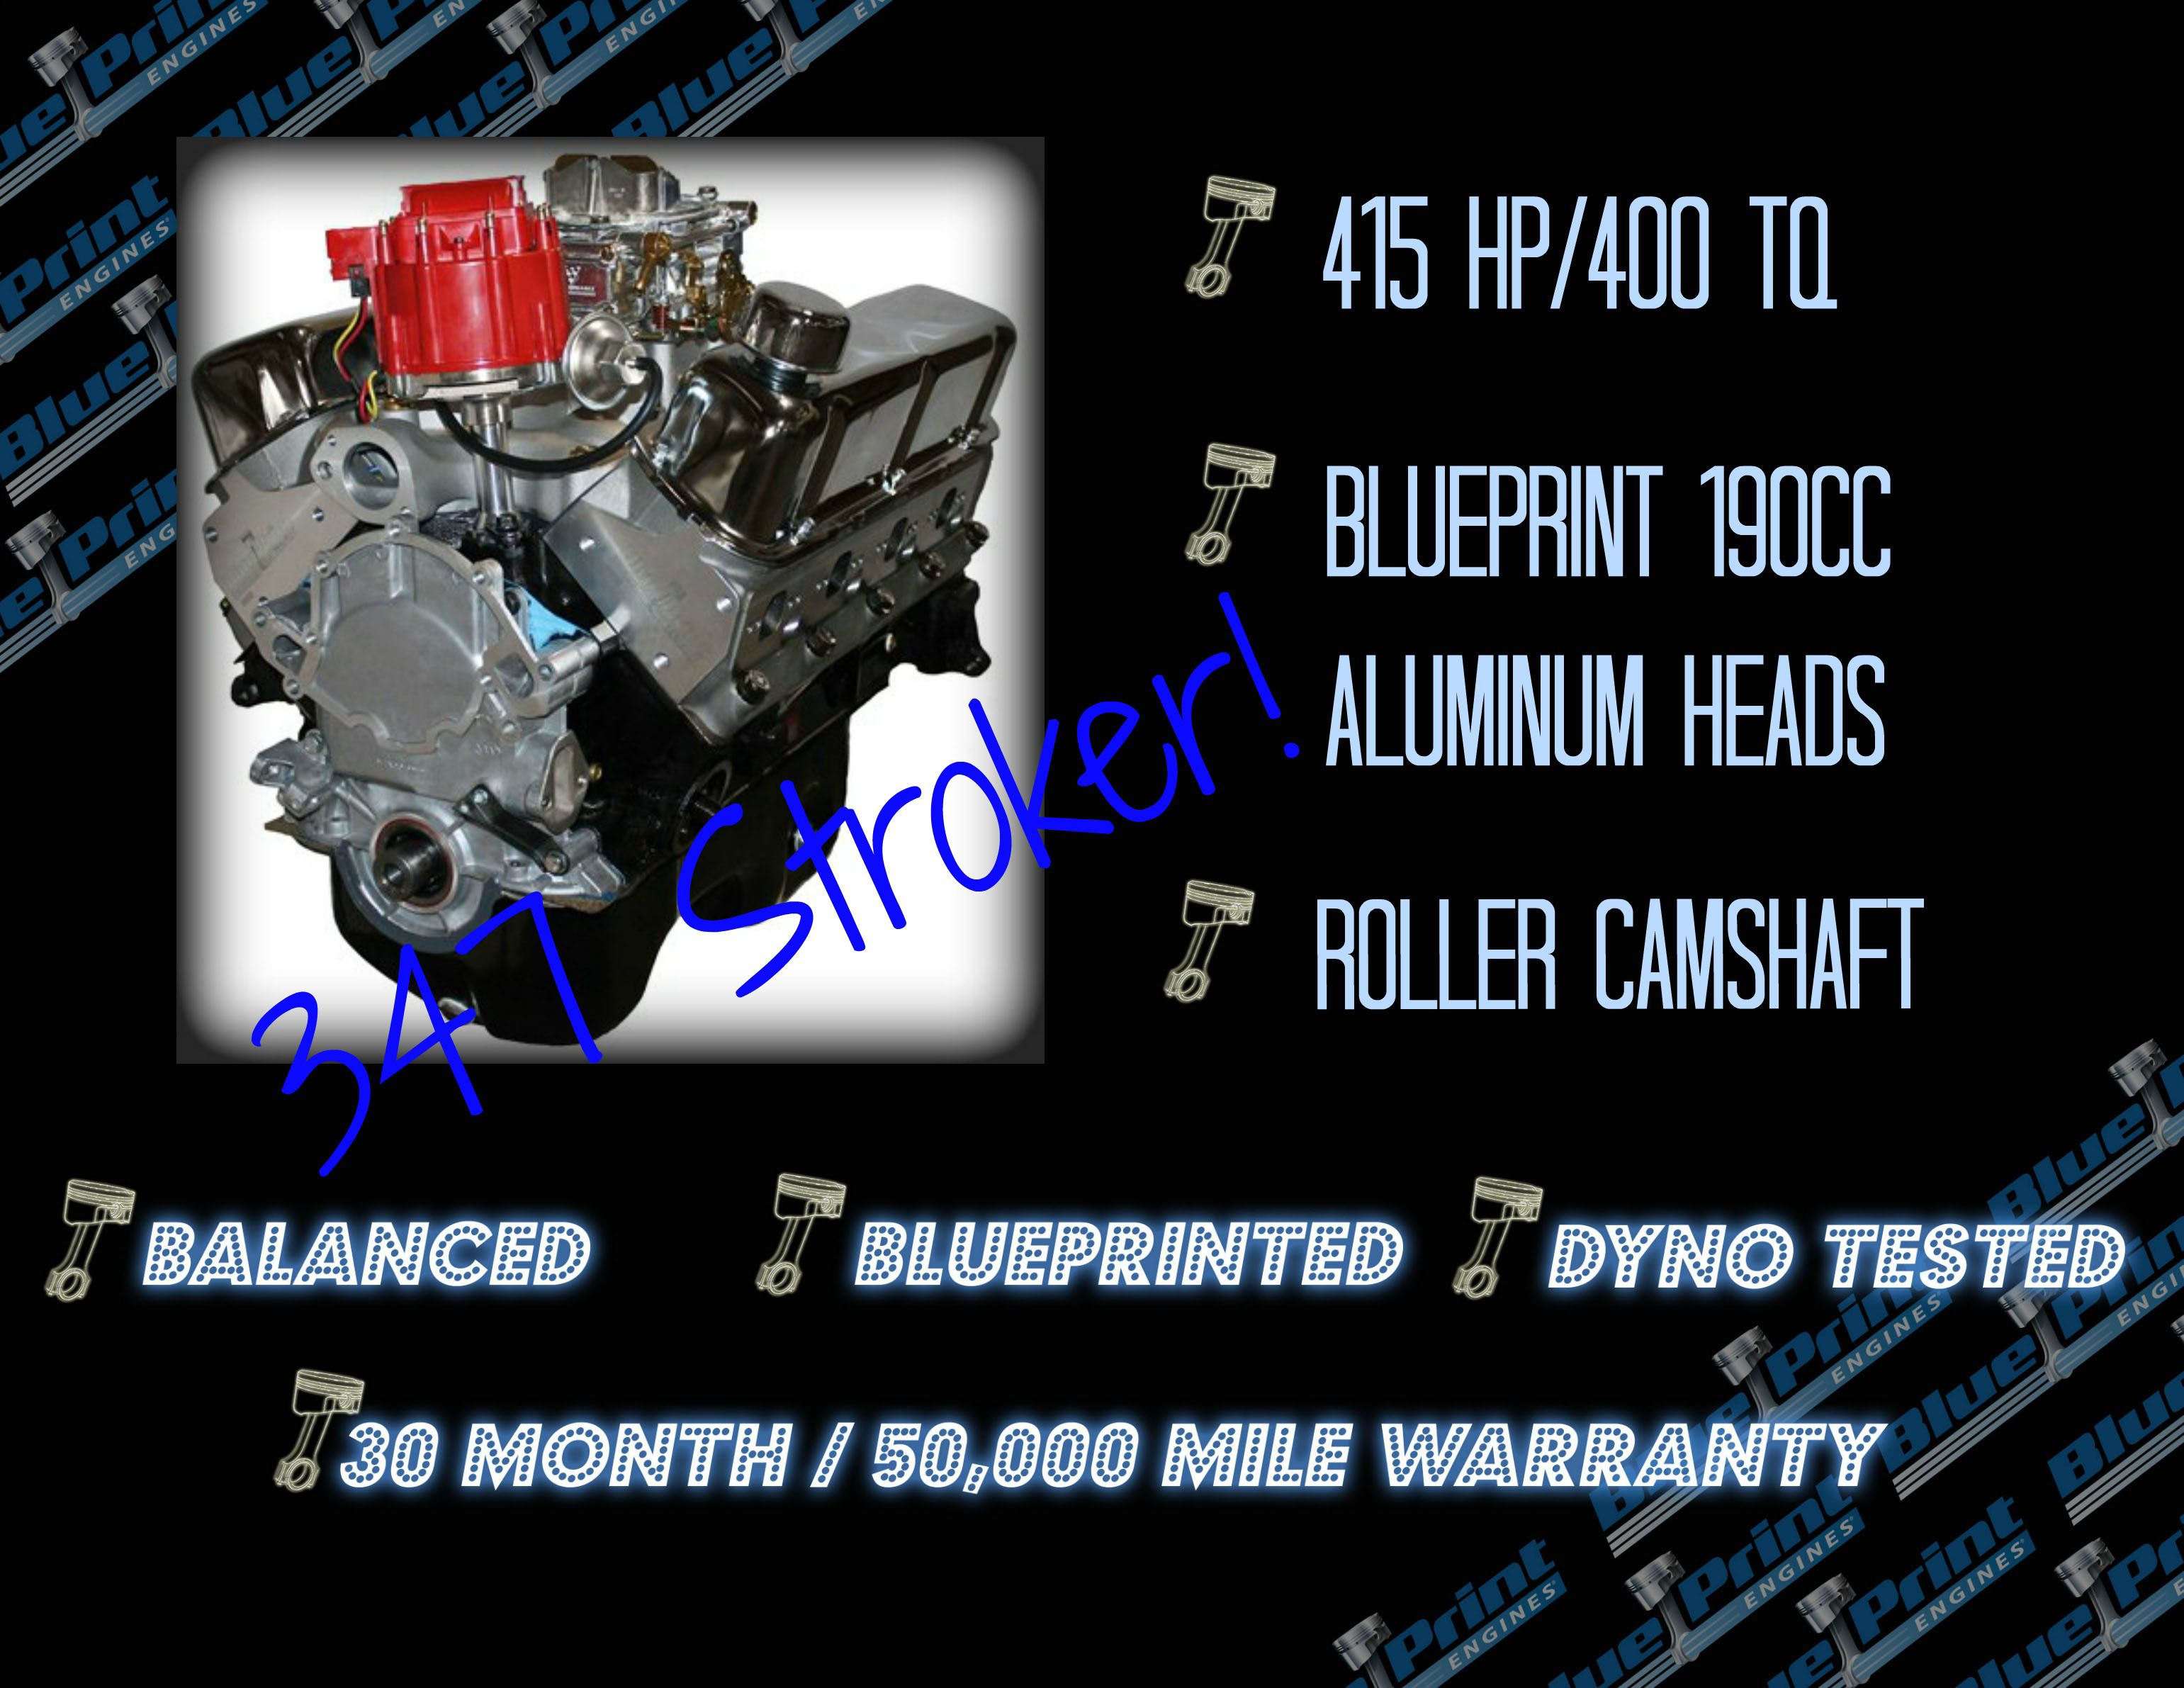 347CI Stroker Crate Engine | Small Block Ford Style